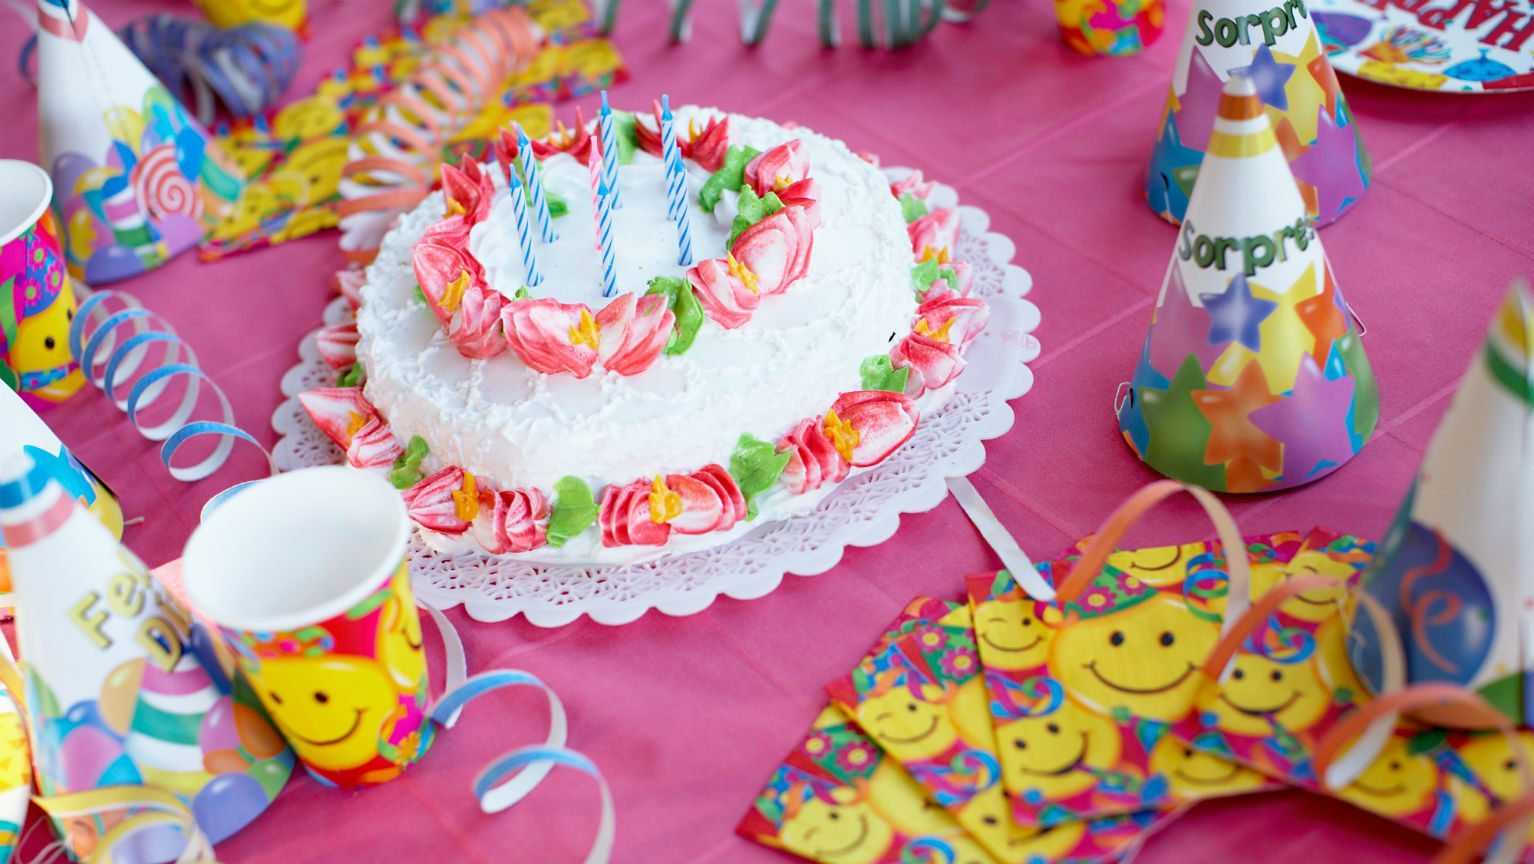 Birthday cake and party supplies on table